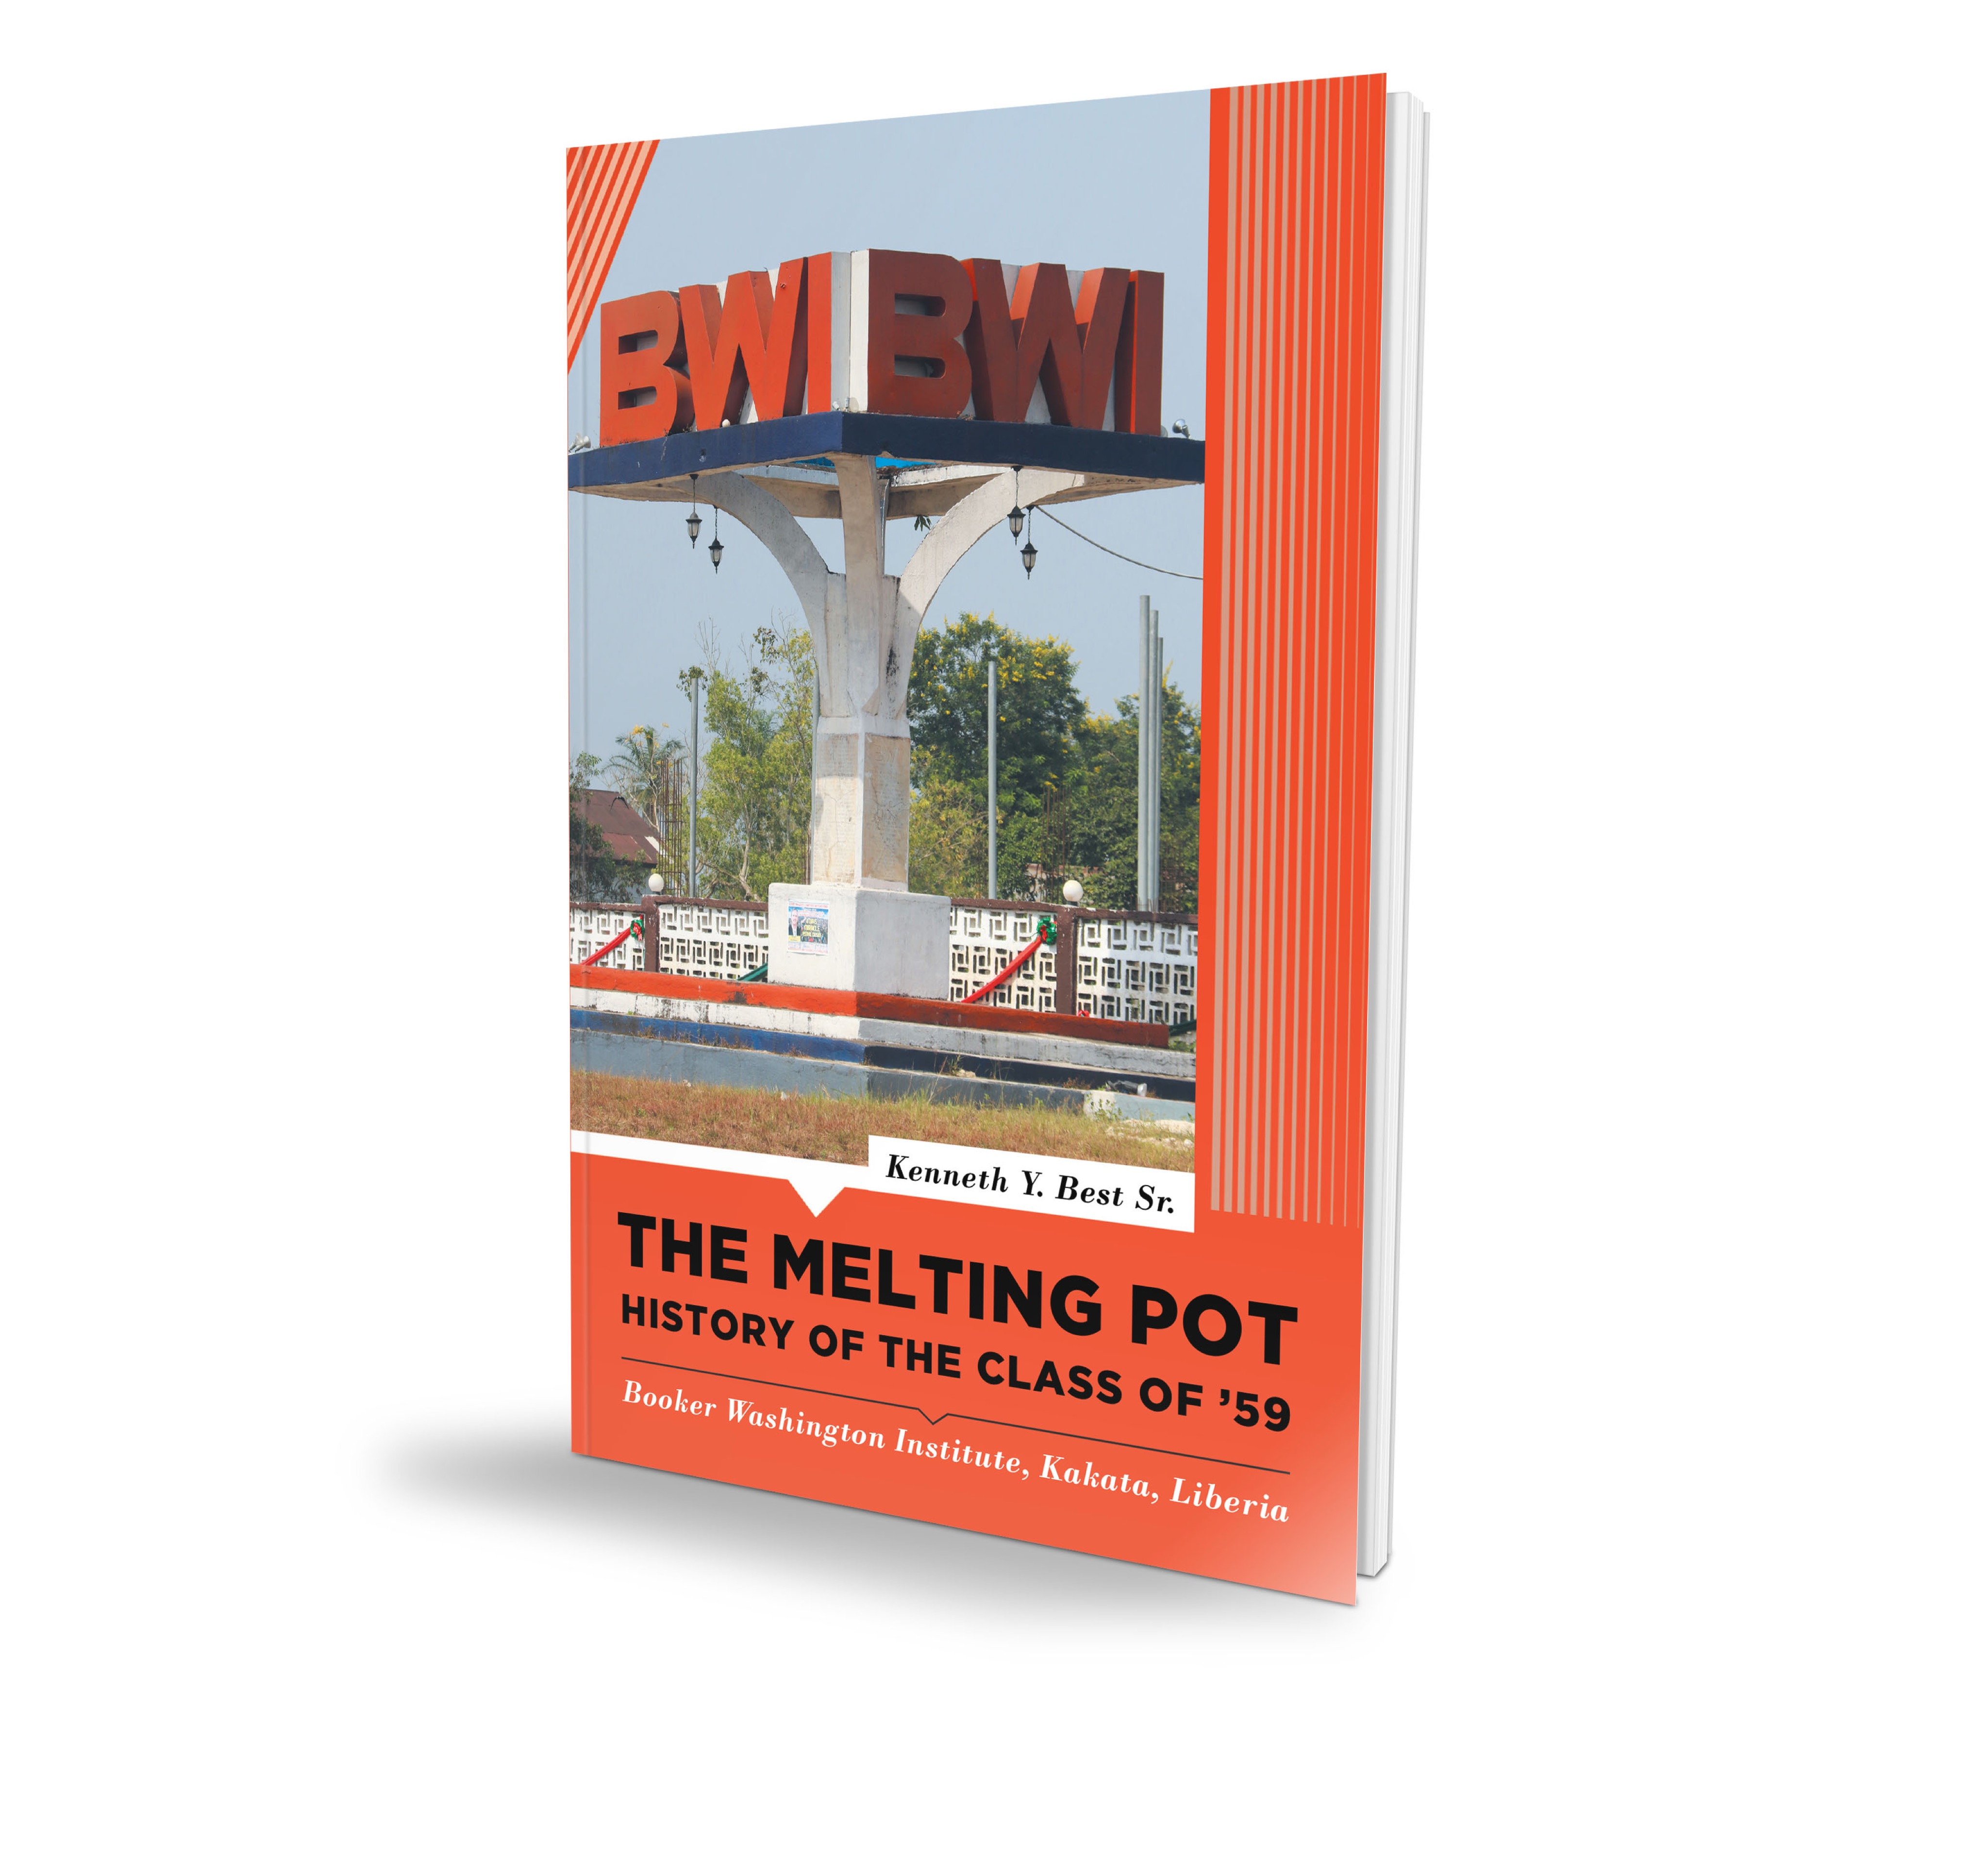 The Melting Pot: History of the Class of '59